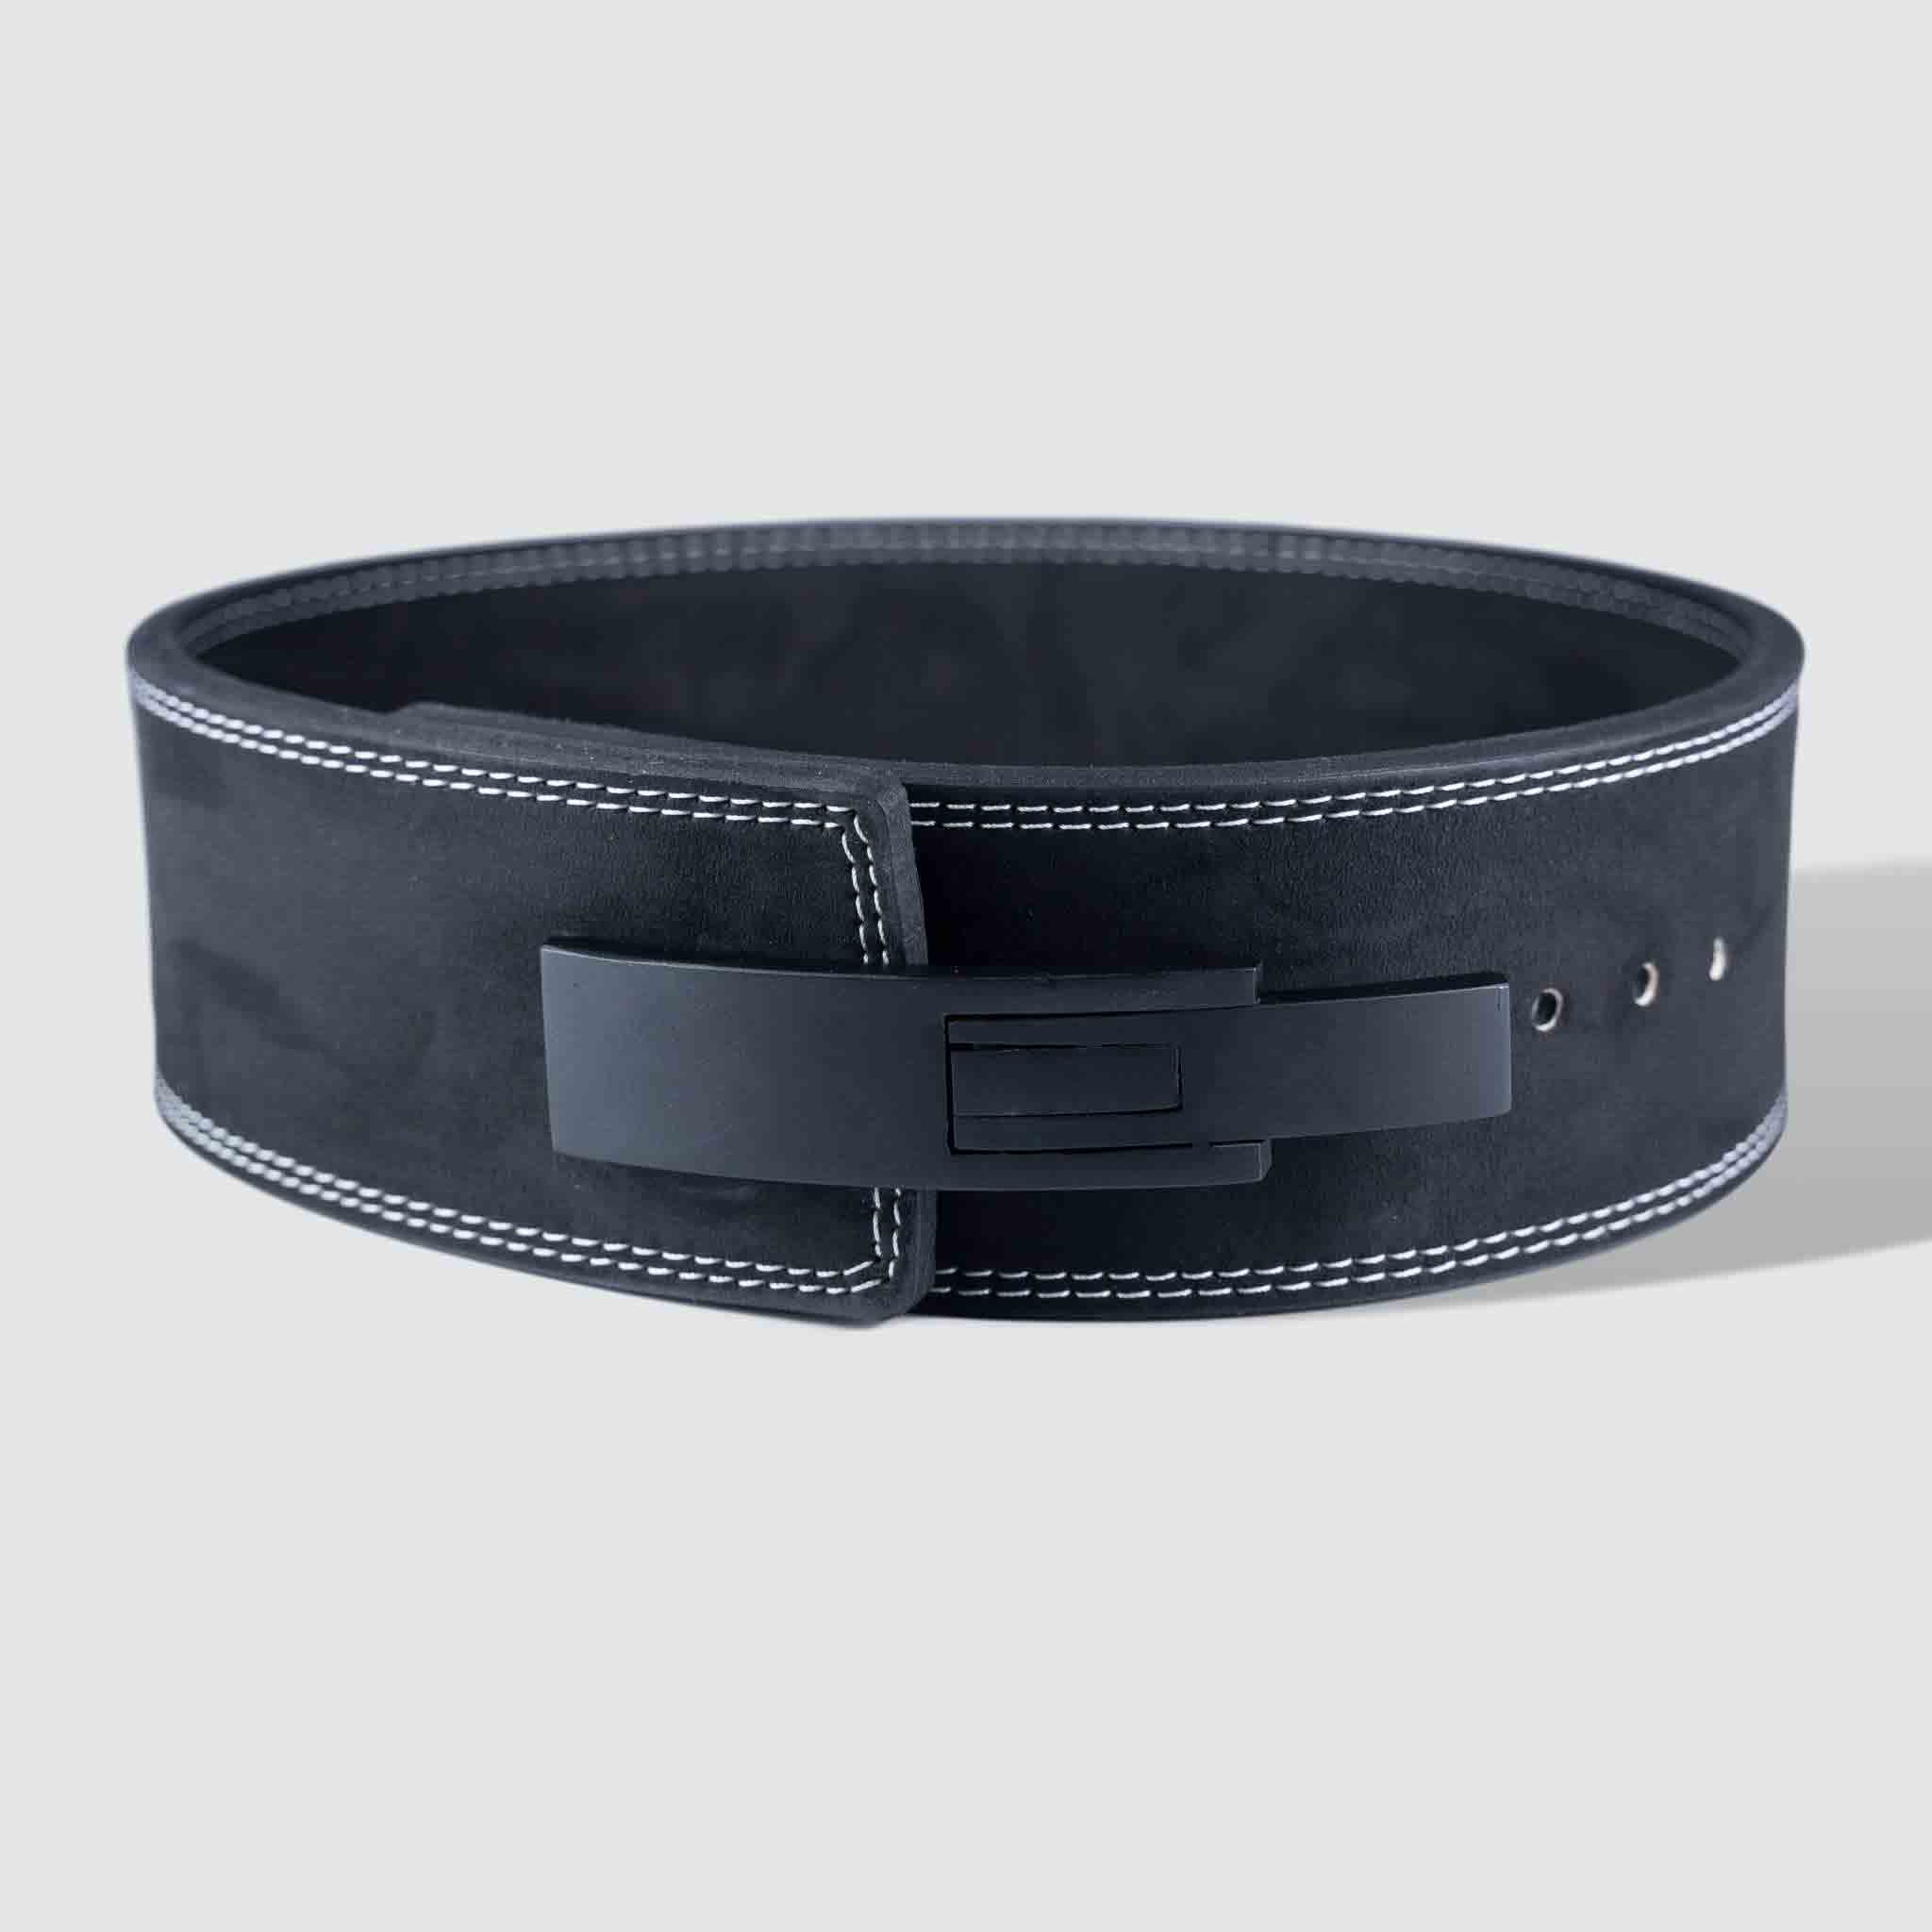 Strength Shop 13mm Lever Belt - IPF Approved - Black **Ships on January 15th** - Strength Shop USA